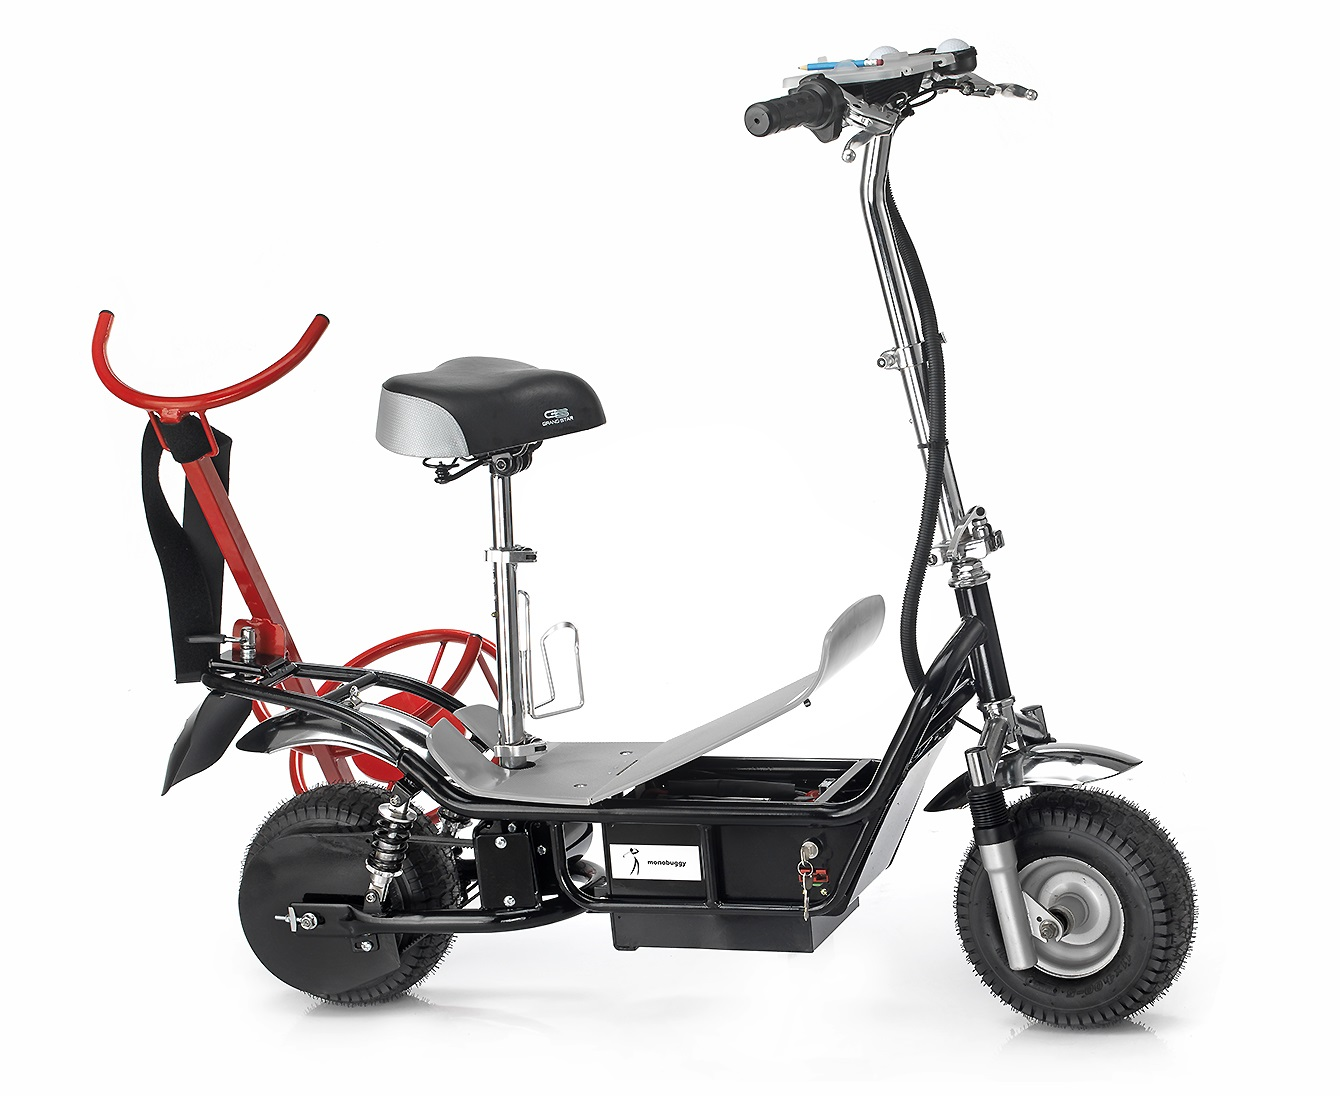 Scooter with Rack from right side and half open Battery room